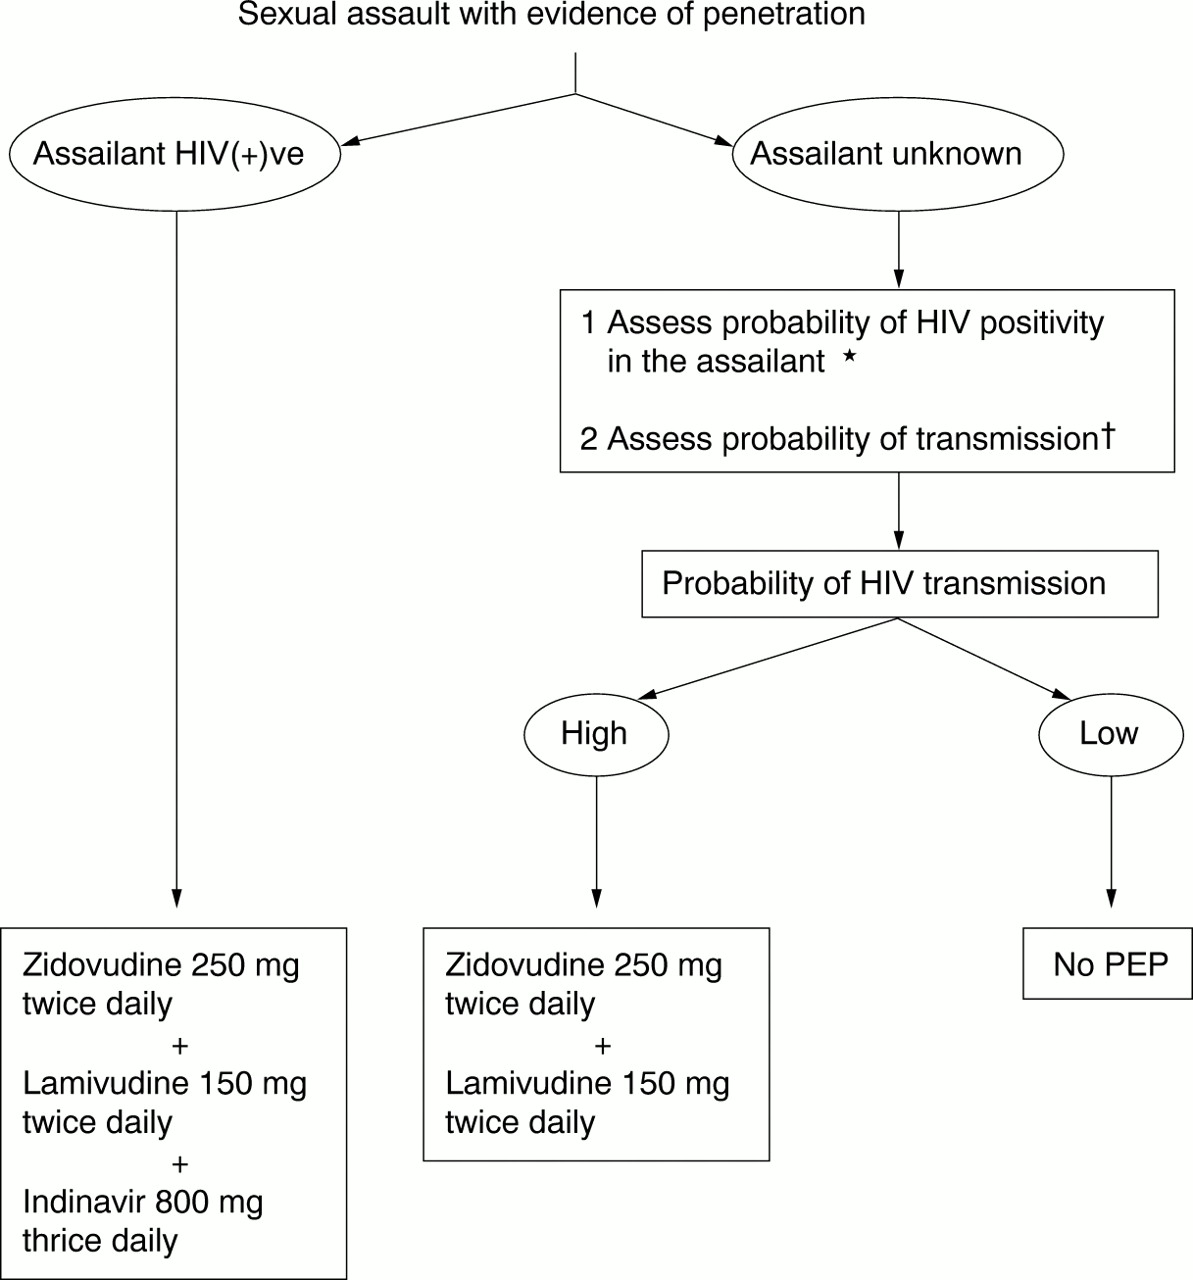 Post-exposure prophylaxis for HIV infection after sexual assault